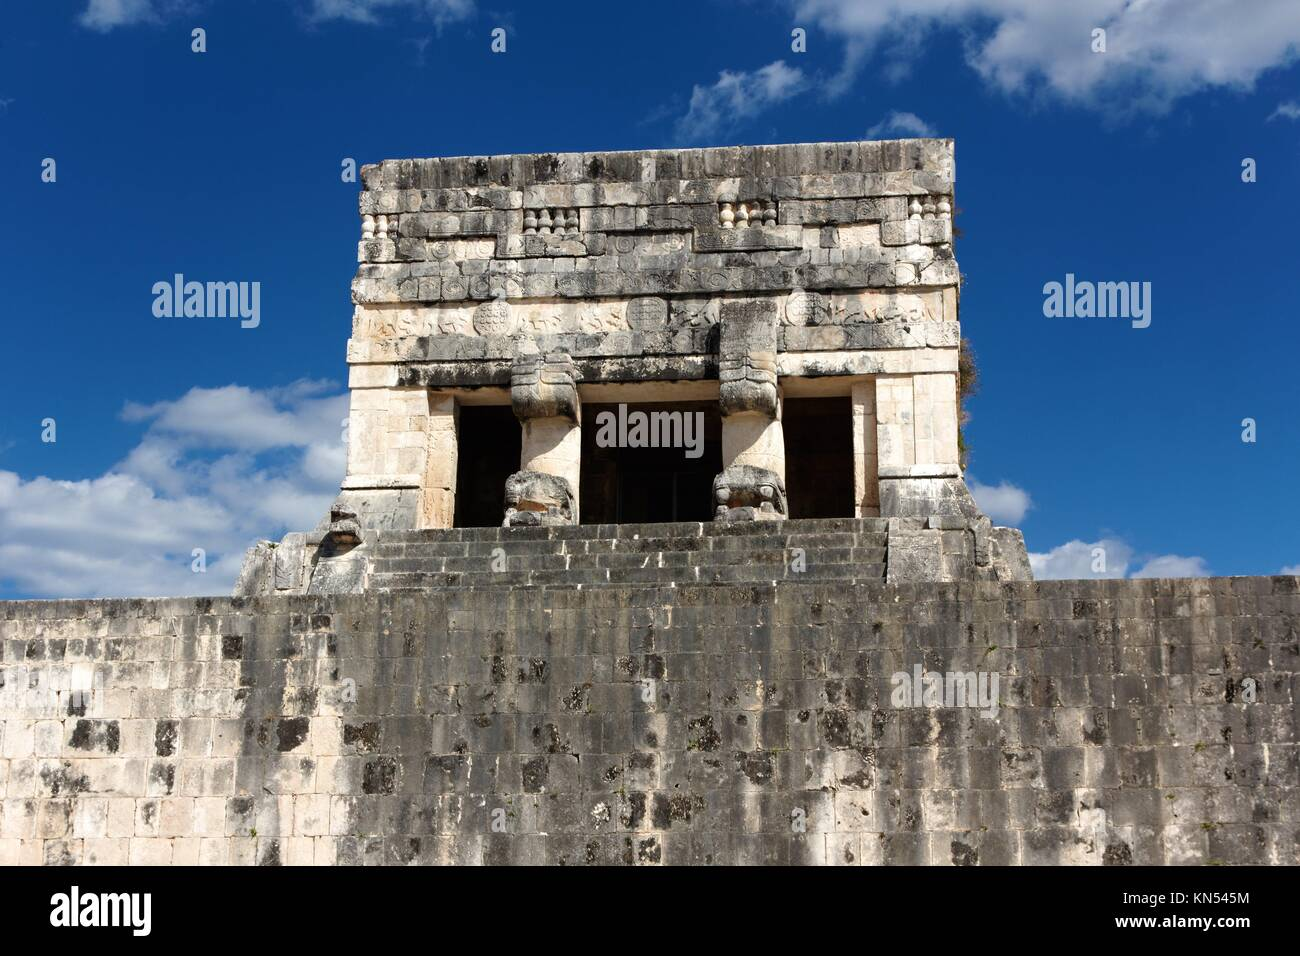 Detail of a tower at the Juego de Pelota (ball game) ruins at the Mayan city of Chichen Itza, Mexico. - Stock Image